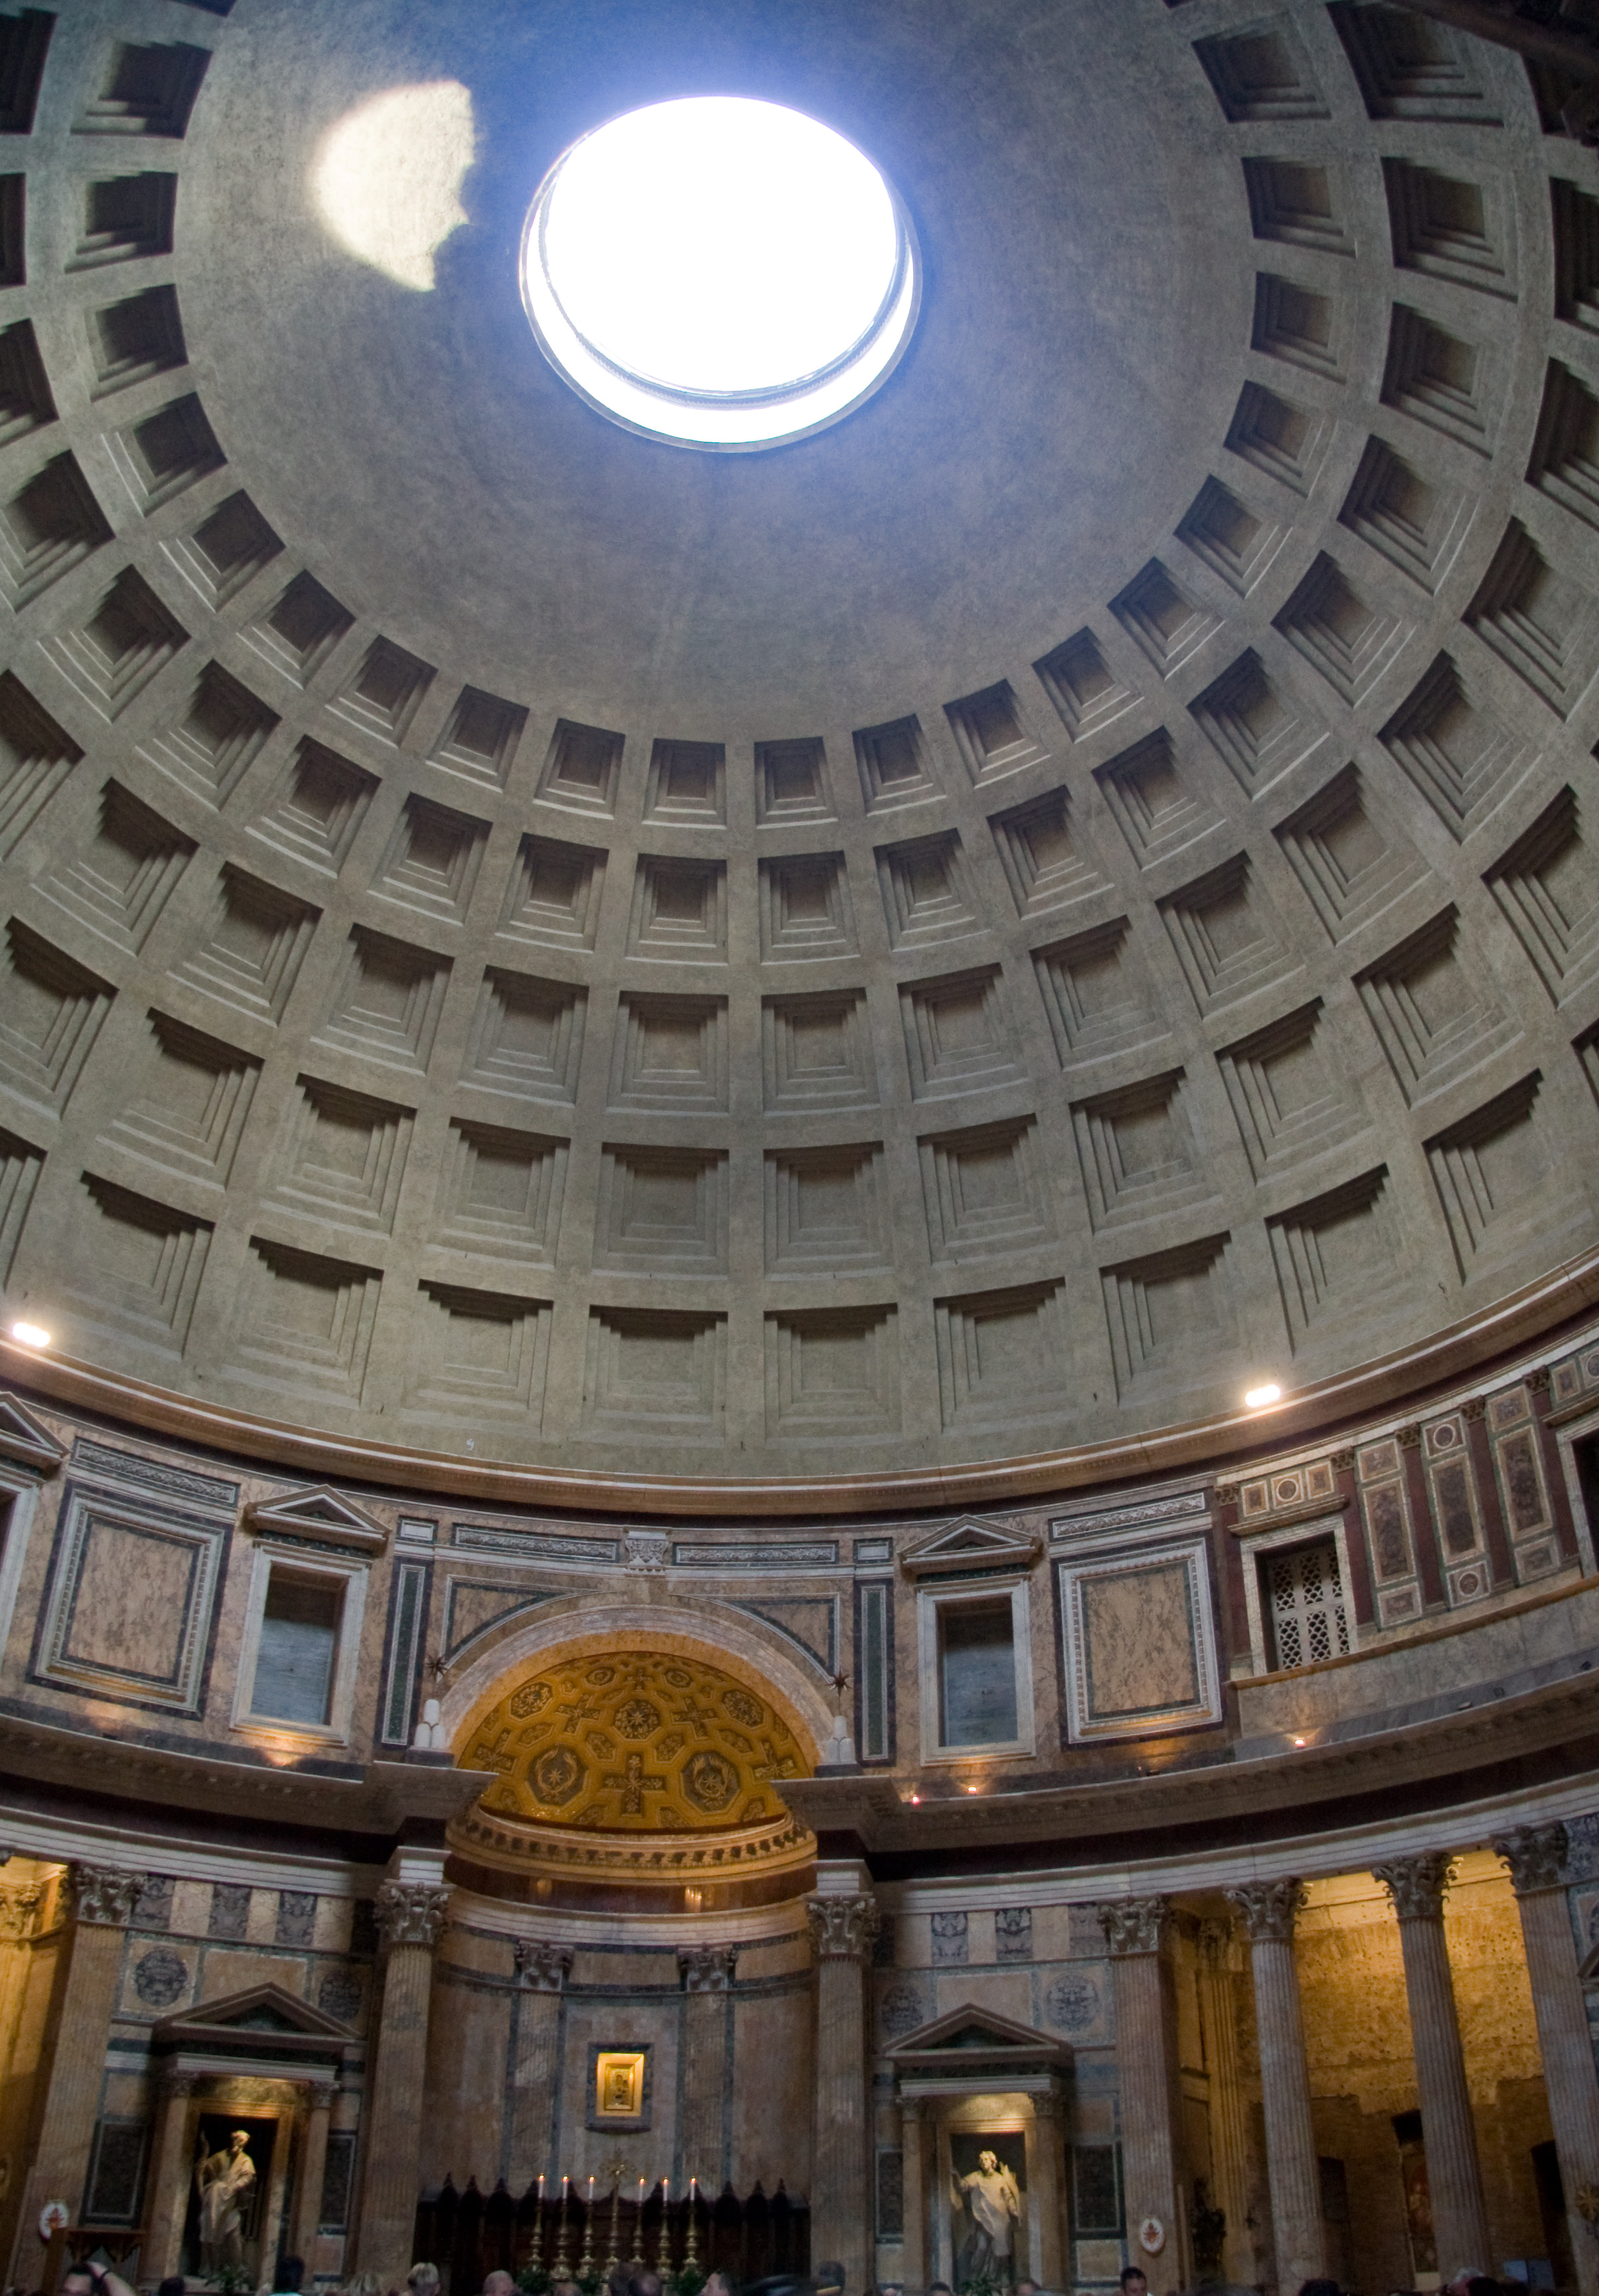 Camera Exterieur Maison Droit File:pantheon Panorama, Rome - 6.jpg - Wikimedia Commons